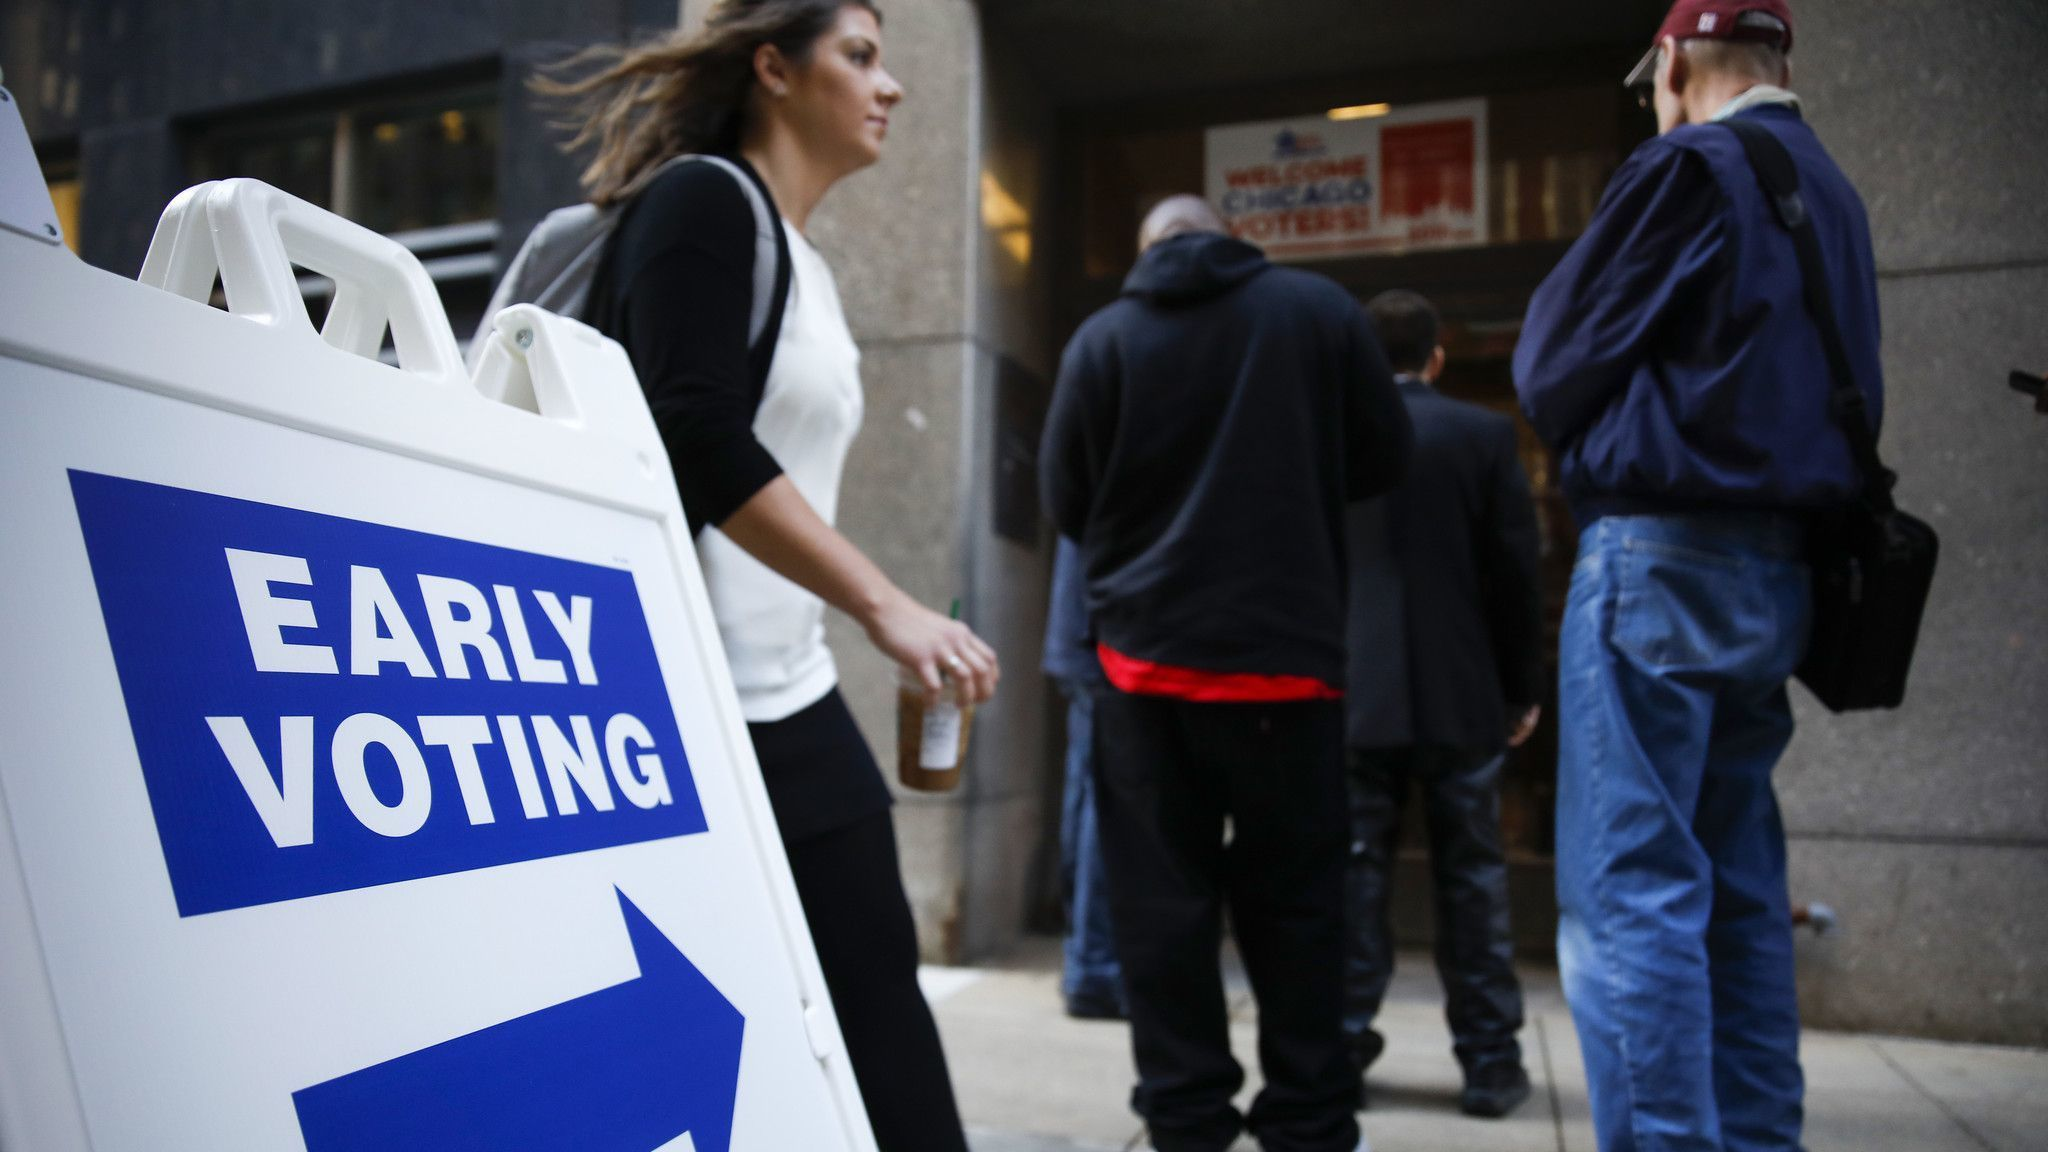 Early voting options expand across Chicago region, state on Monday: Here's what you need to know